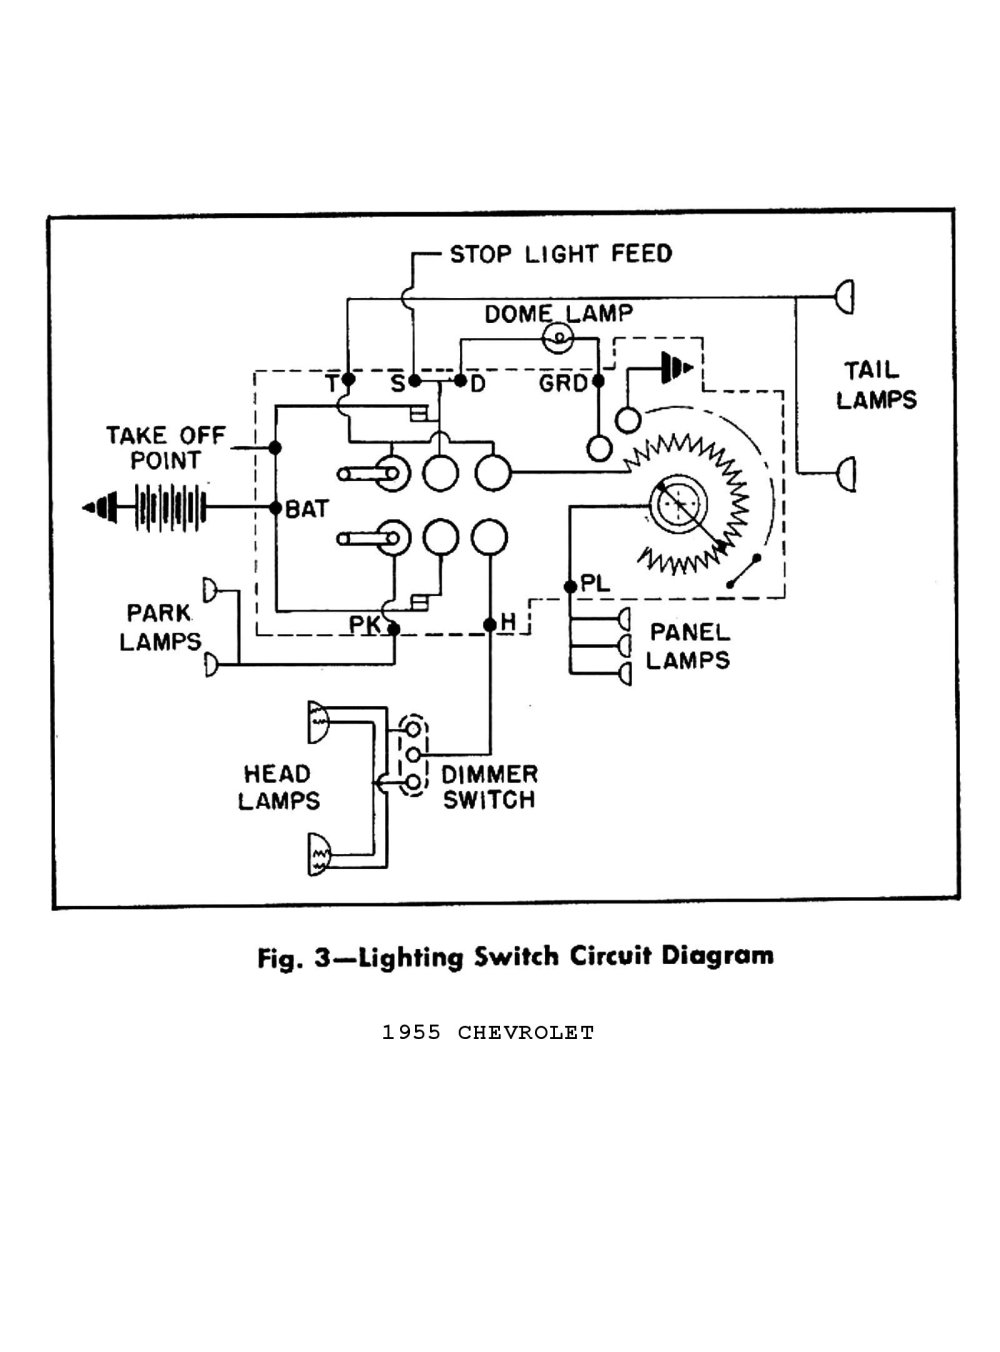 medium resolution of gm dome light wiring harness wiring library pro light wiring 1955 lighting switch circuit chevy wiring